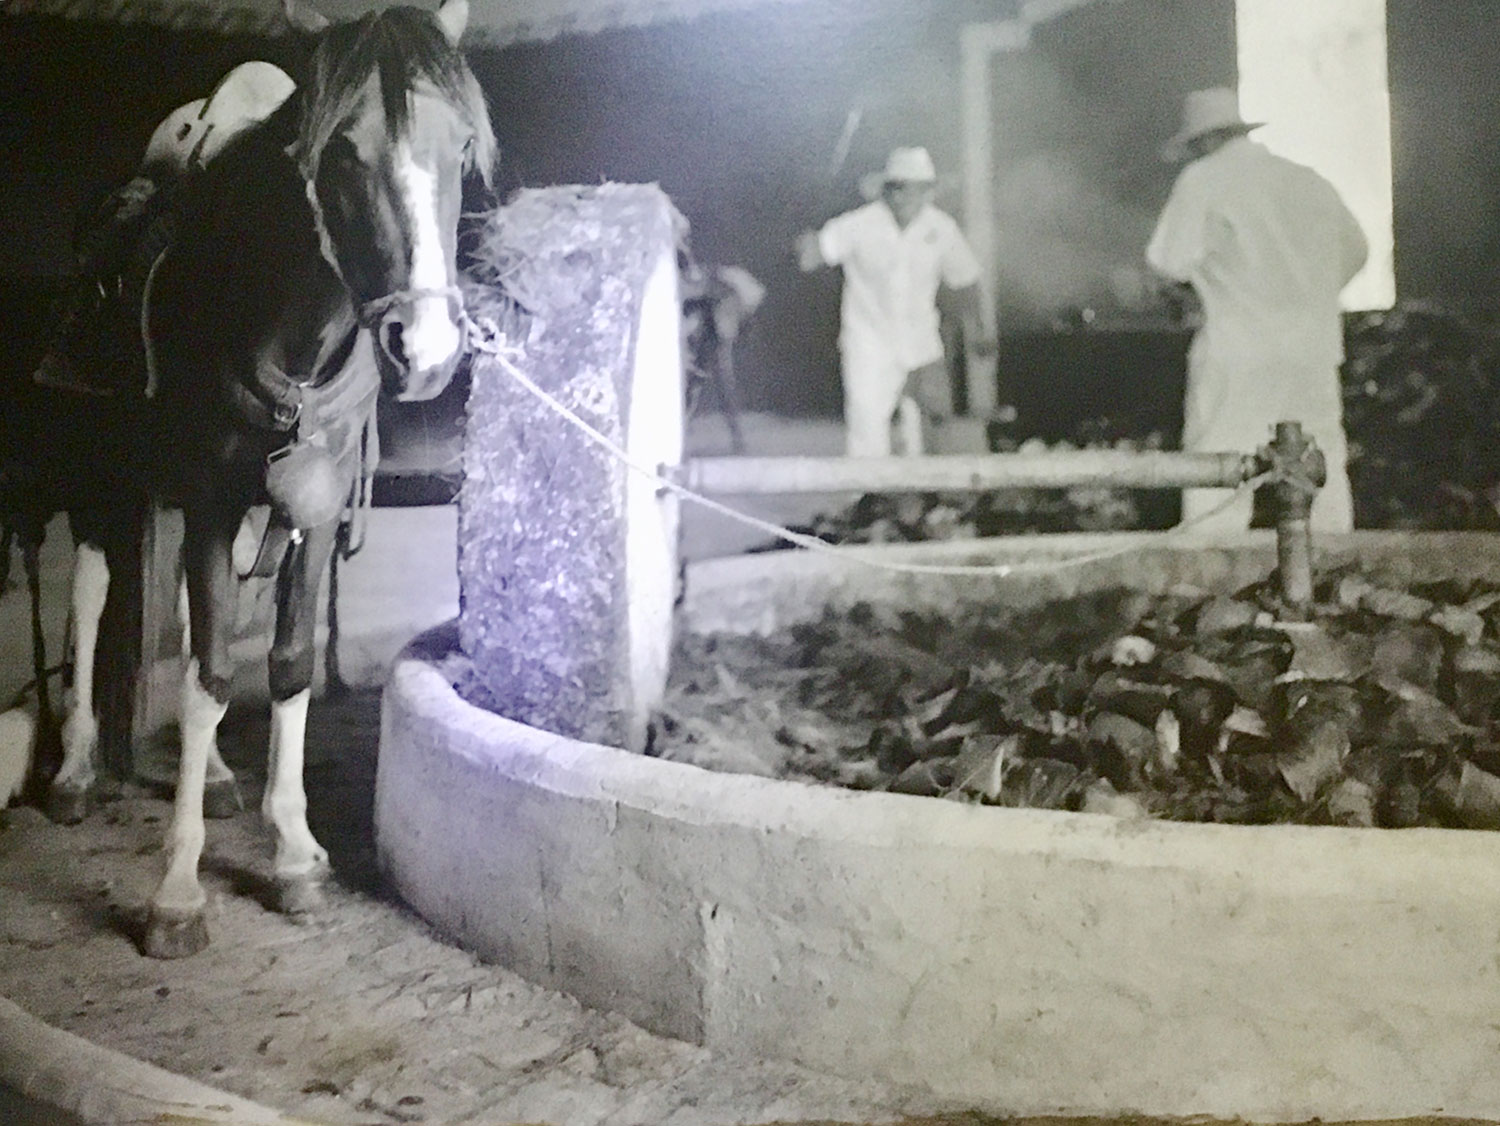 They used to crush the piñas with a grindstone pulled by a mule.